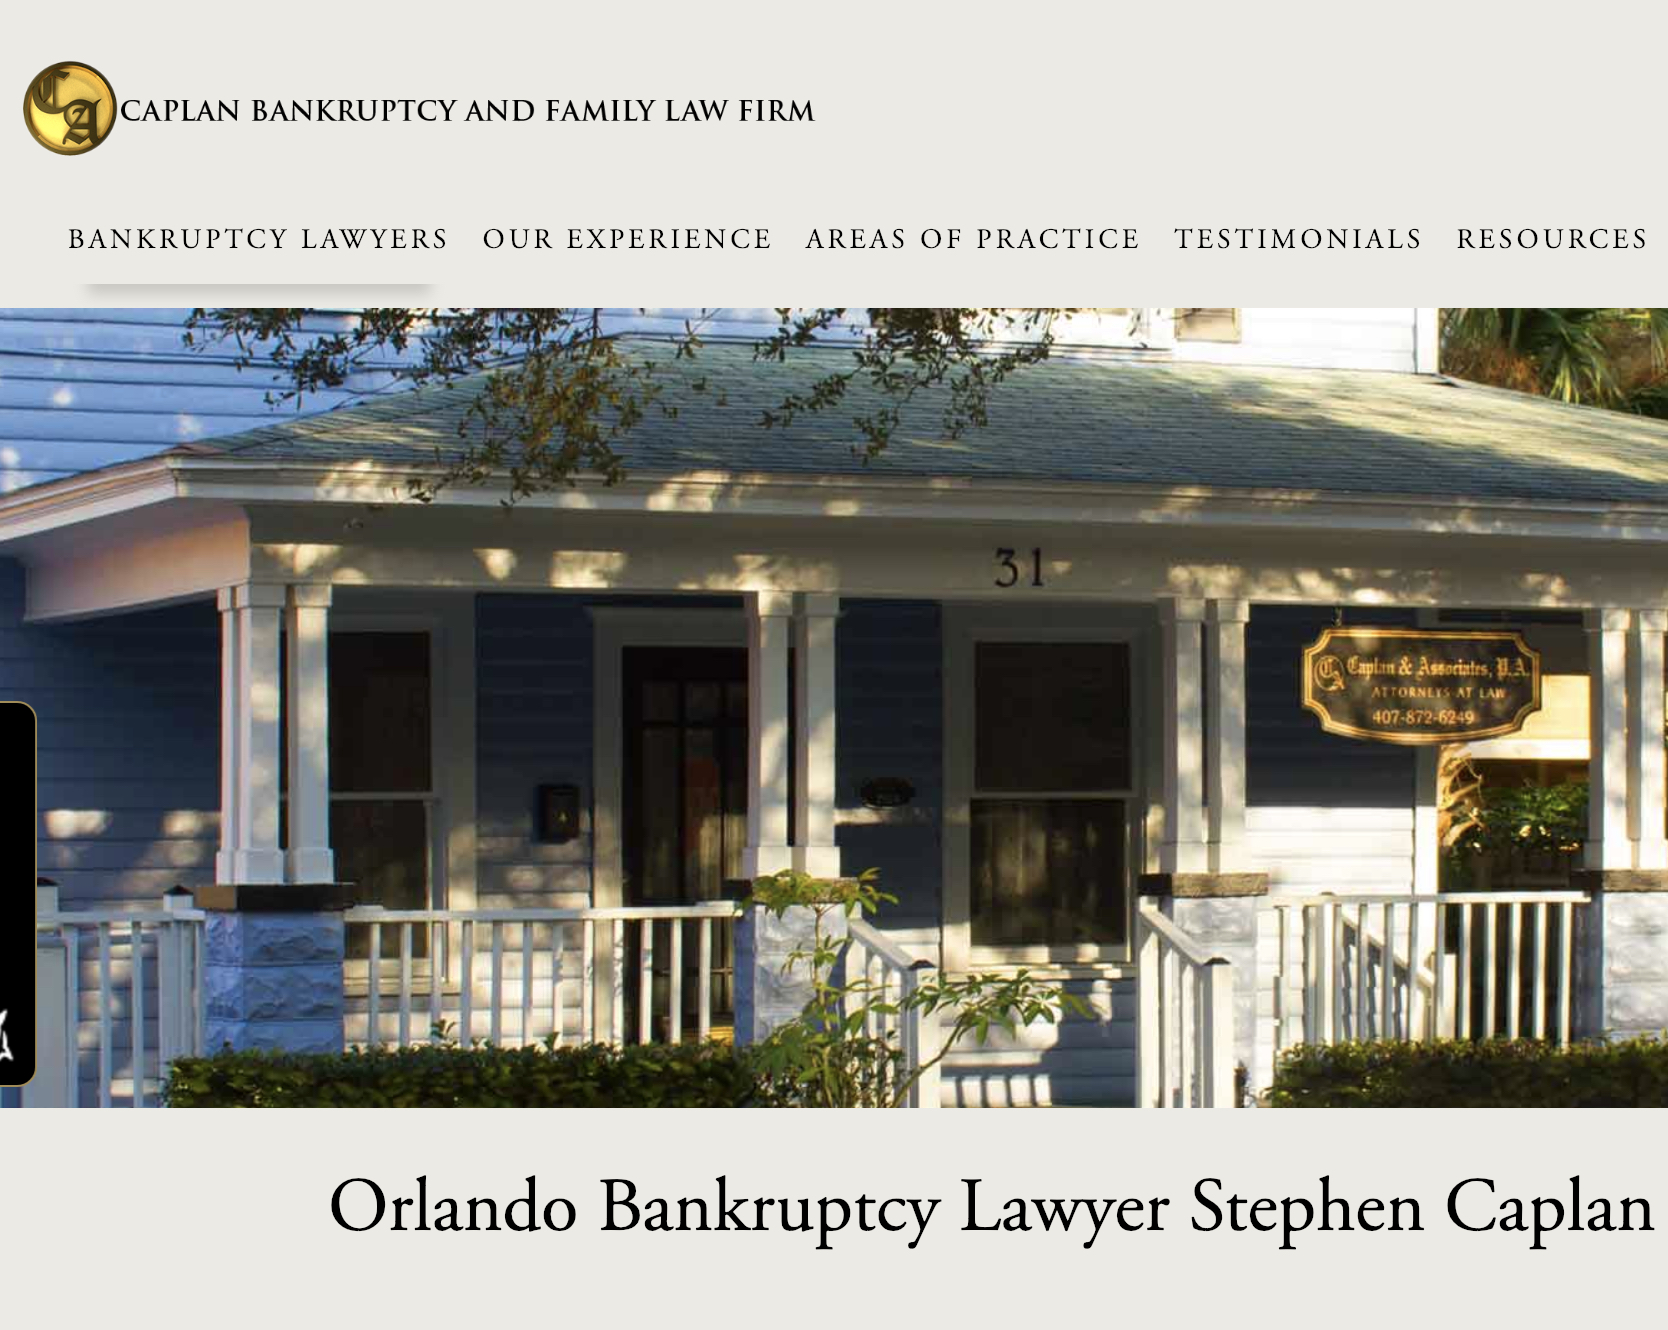 Caplan Bankruptcy and Family Law FIrm, Orlando, FL